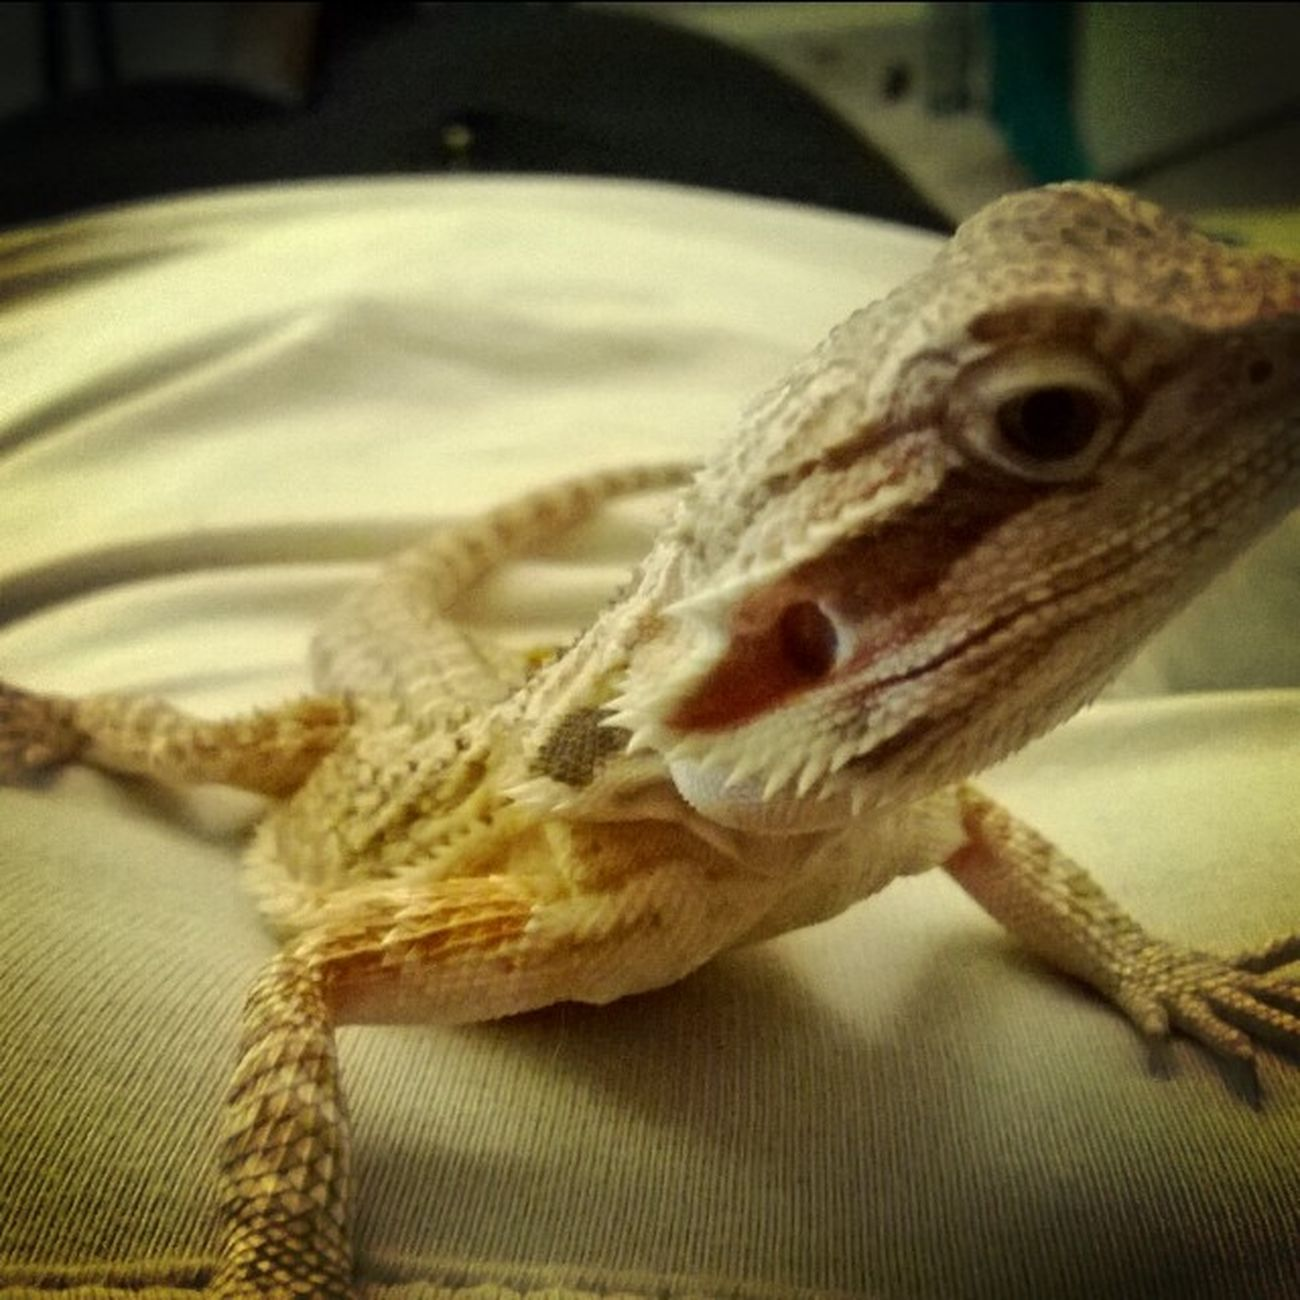 BabyBeardedDragon GettingSoBig 💚